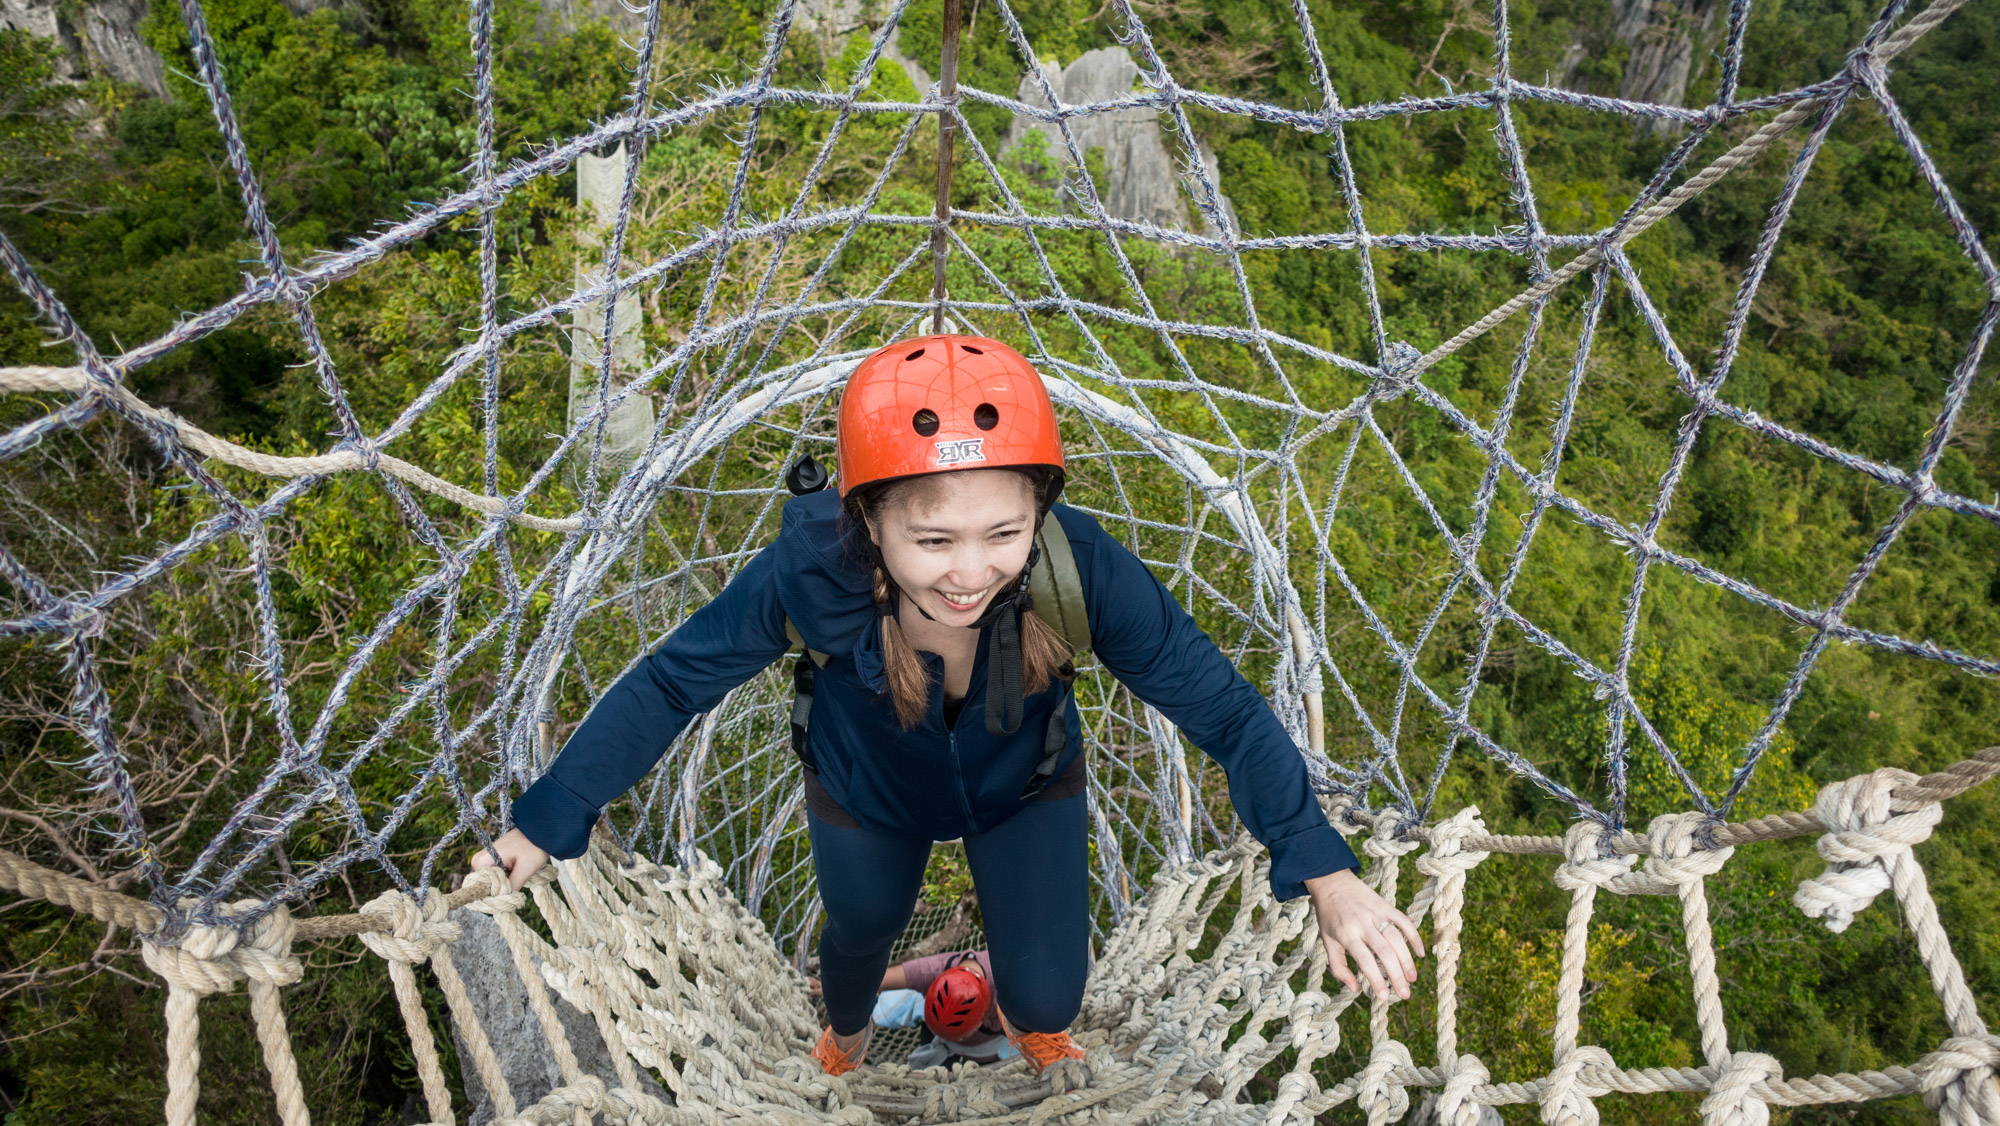 Speaking of fear of heights, I never knew I had one until I climbed up and down the ropes and seeing the great outdoors way way way way below my feet.